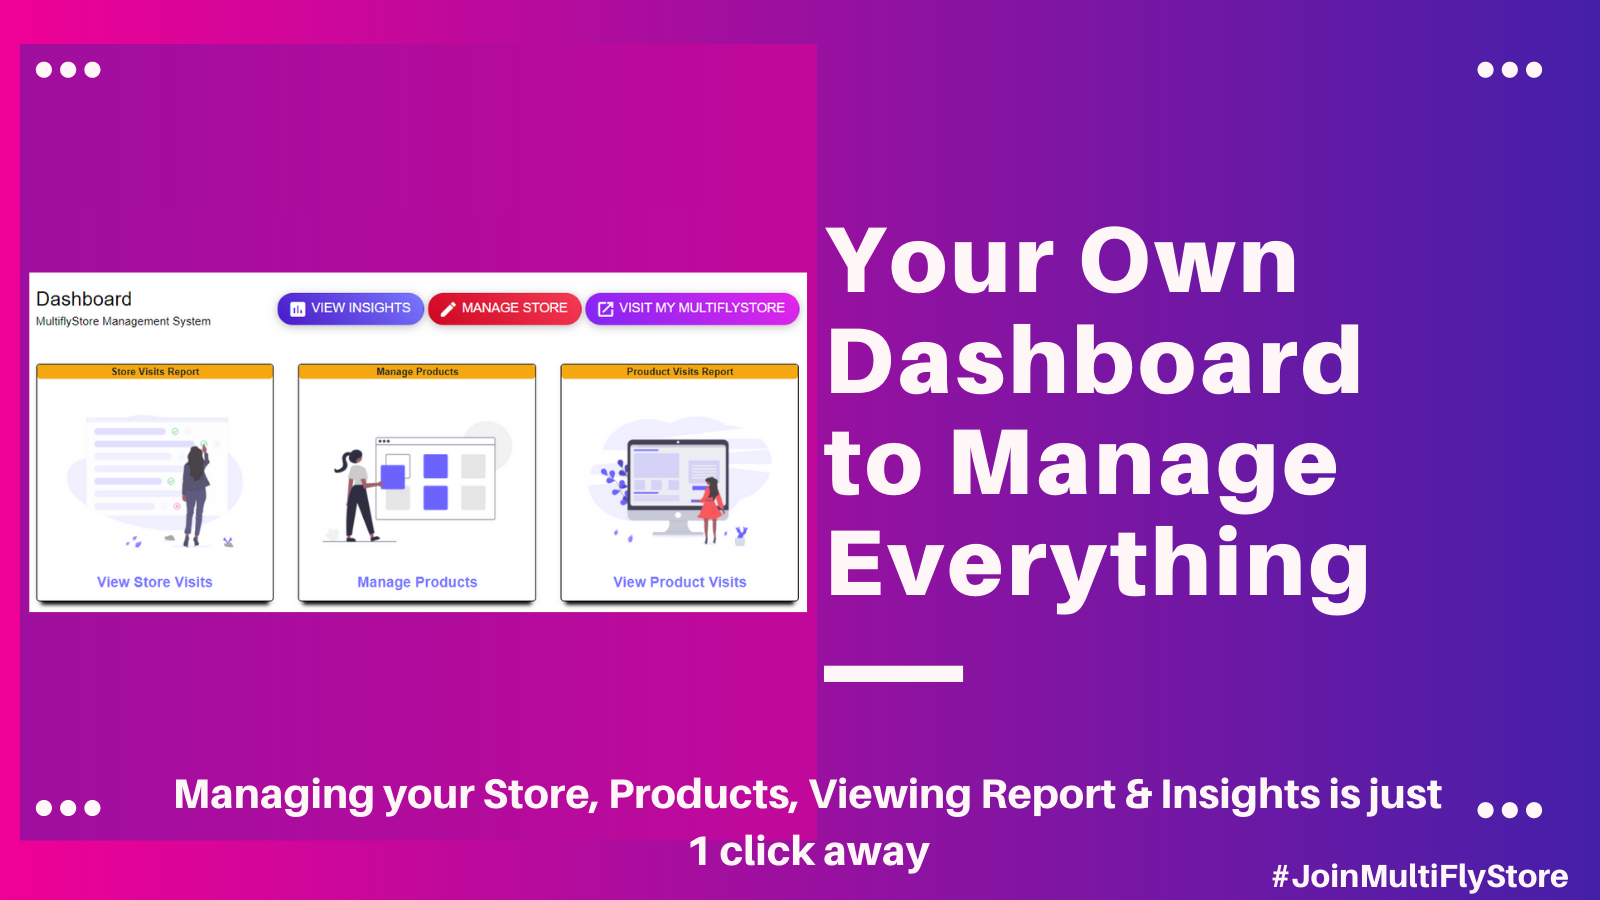 Get a dedicated dashboard to manage your MultiFlyStore